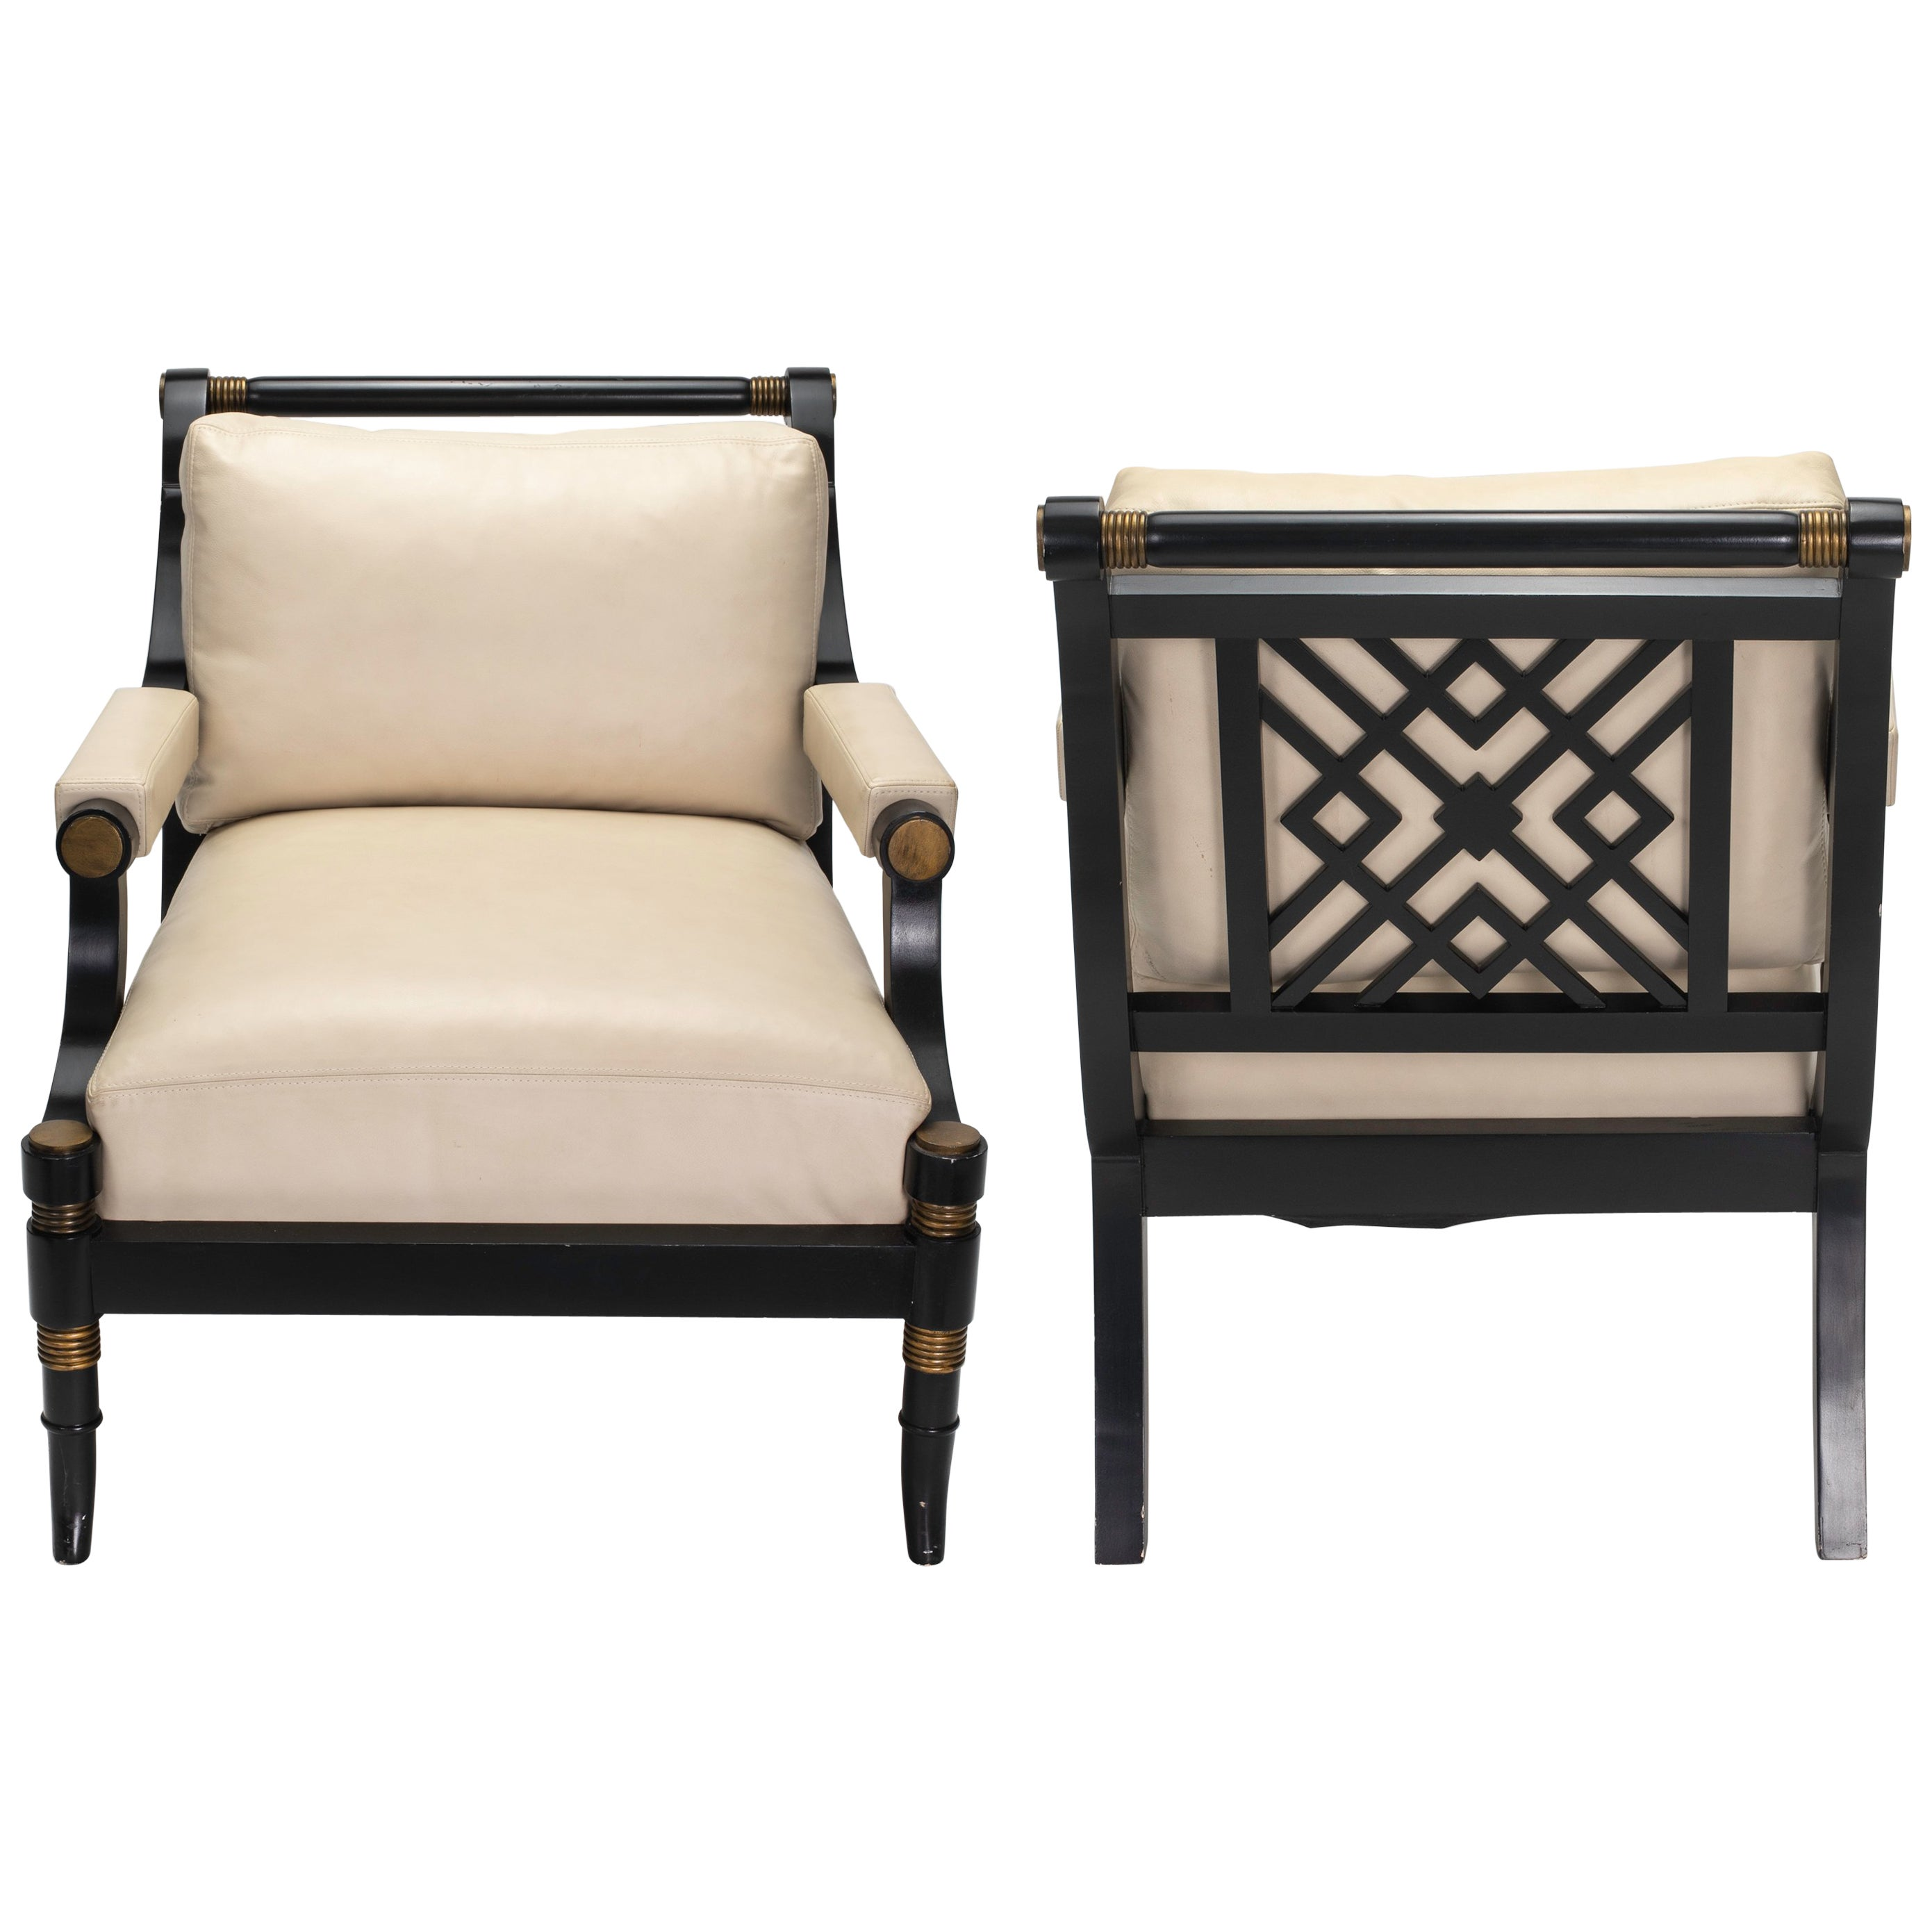 Arm Chairs Pair Of Cream Leather Lounge Armchairs